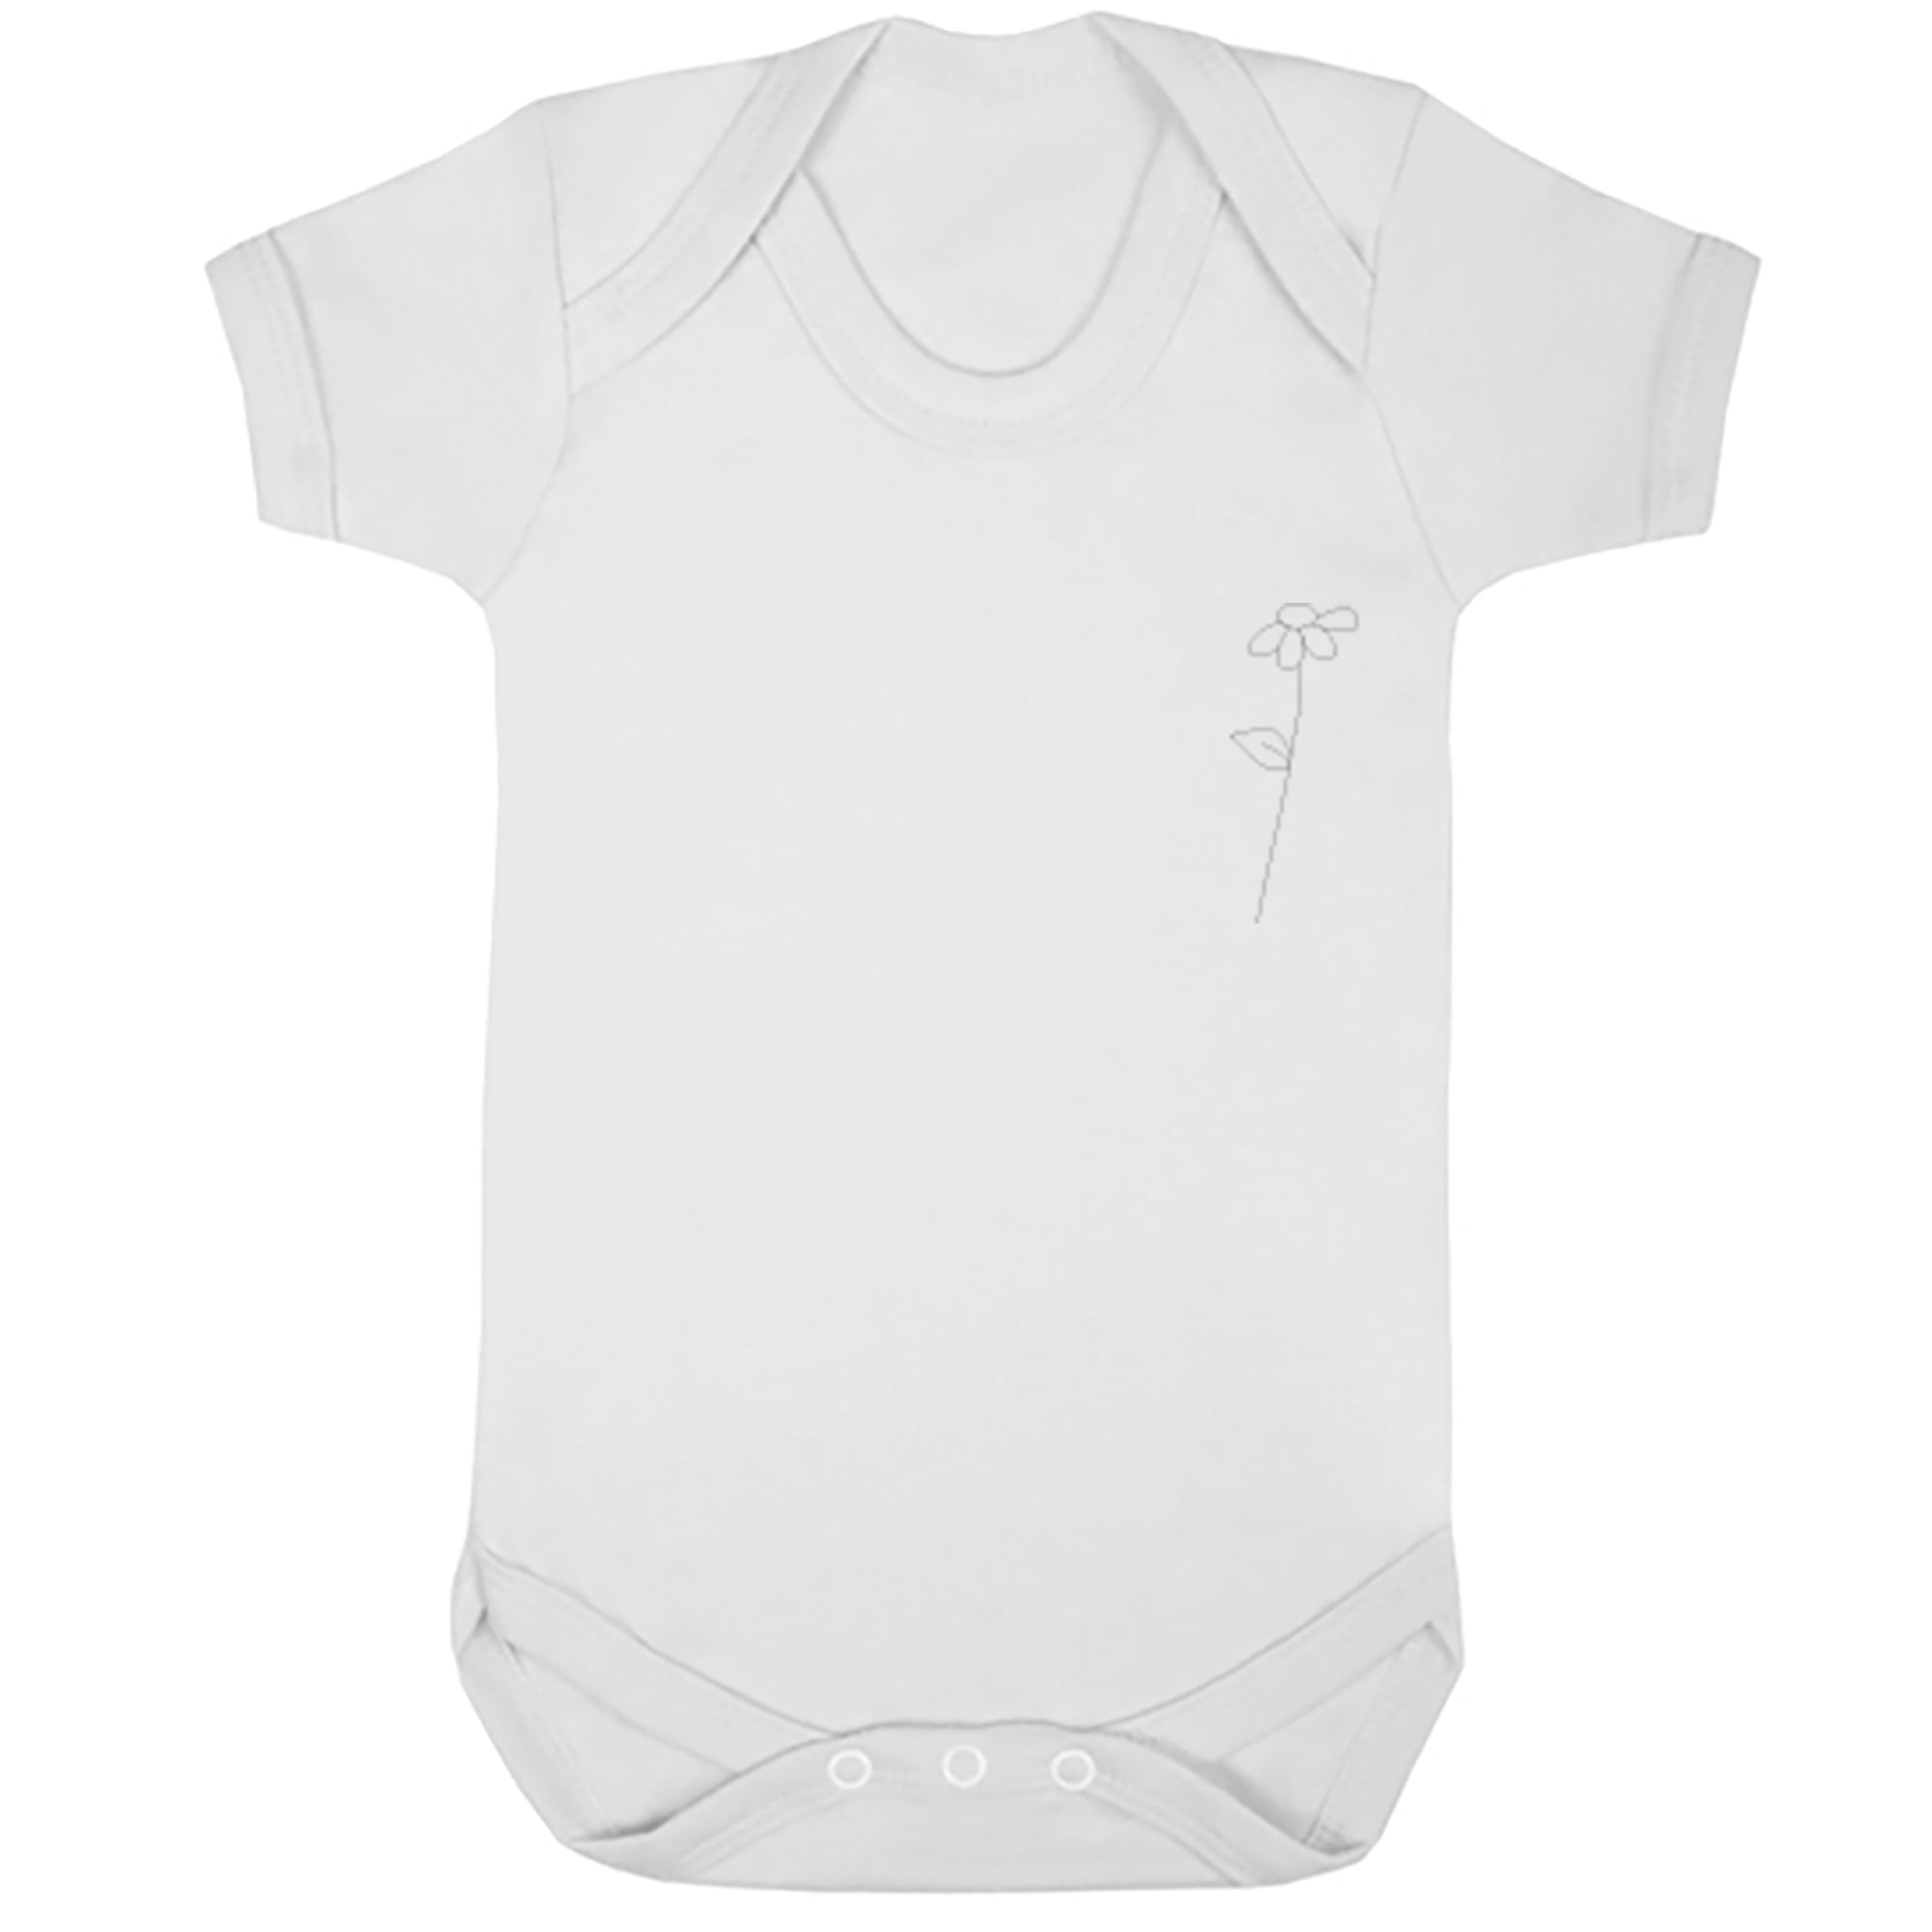 Daisy Stem Pocket Baby Vest S0771 - Illustrated Identity Ltd.